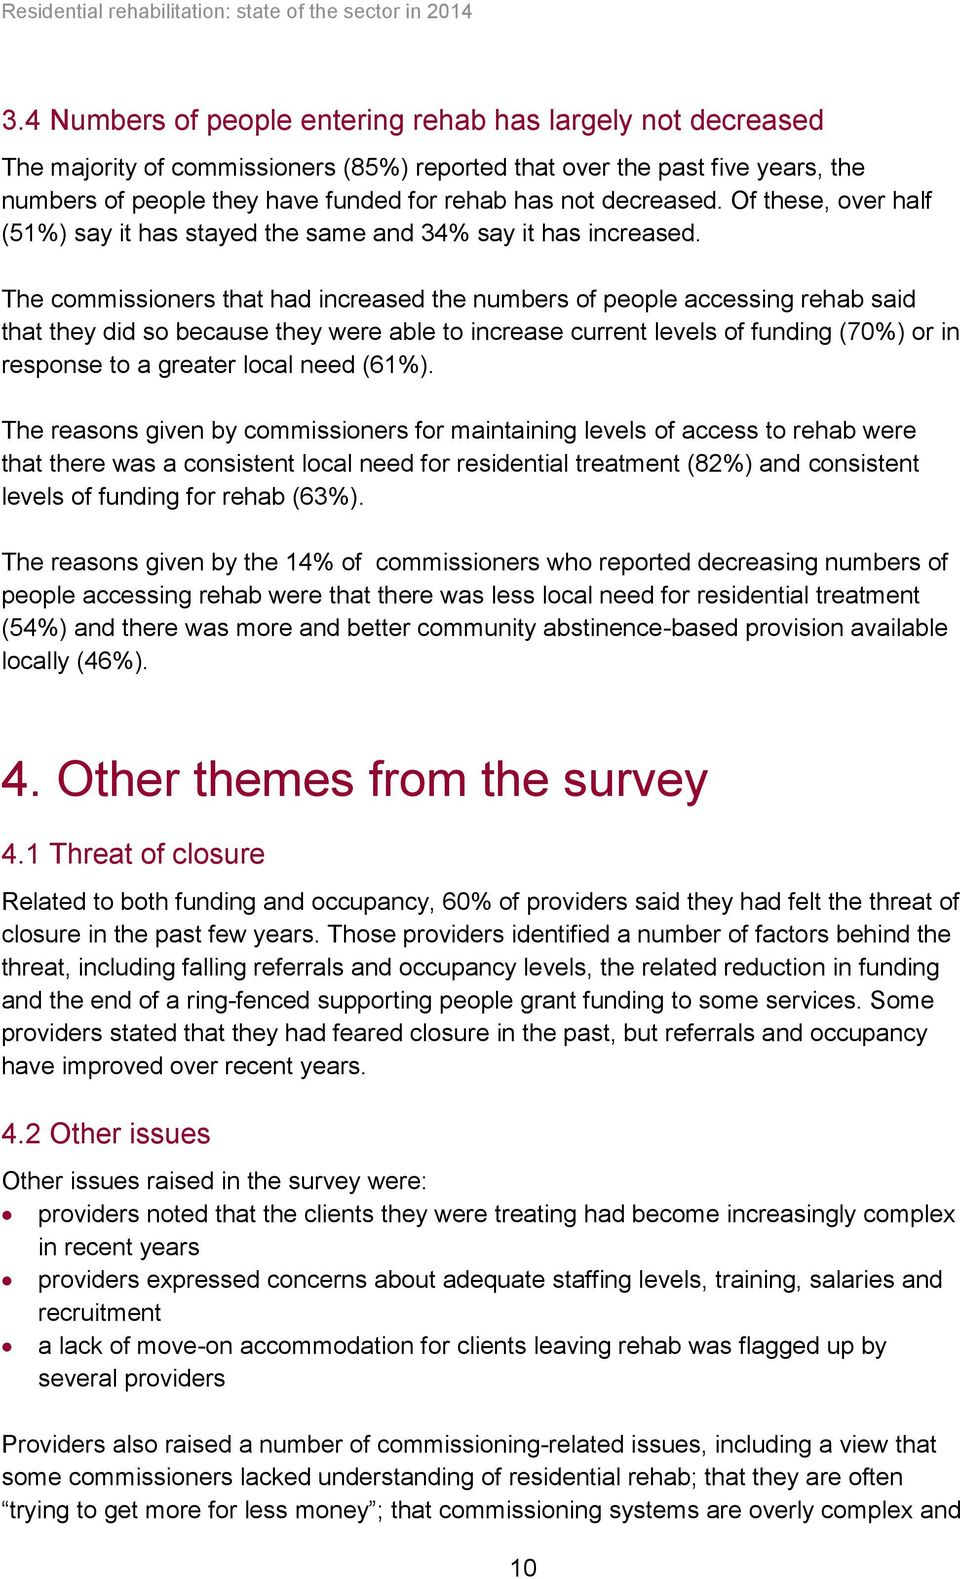 The commissioners that had increased the numbers of people accessing rehab said that they did so because they were able to increase current levels of funding (70%) or in response to a greater local